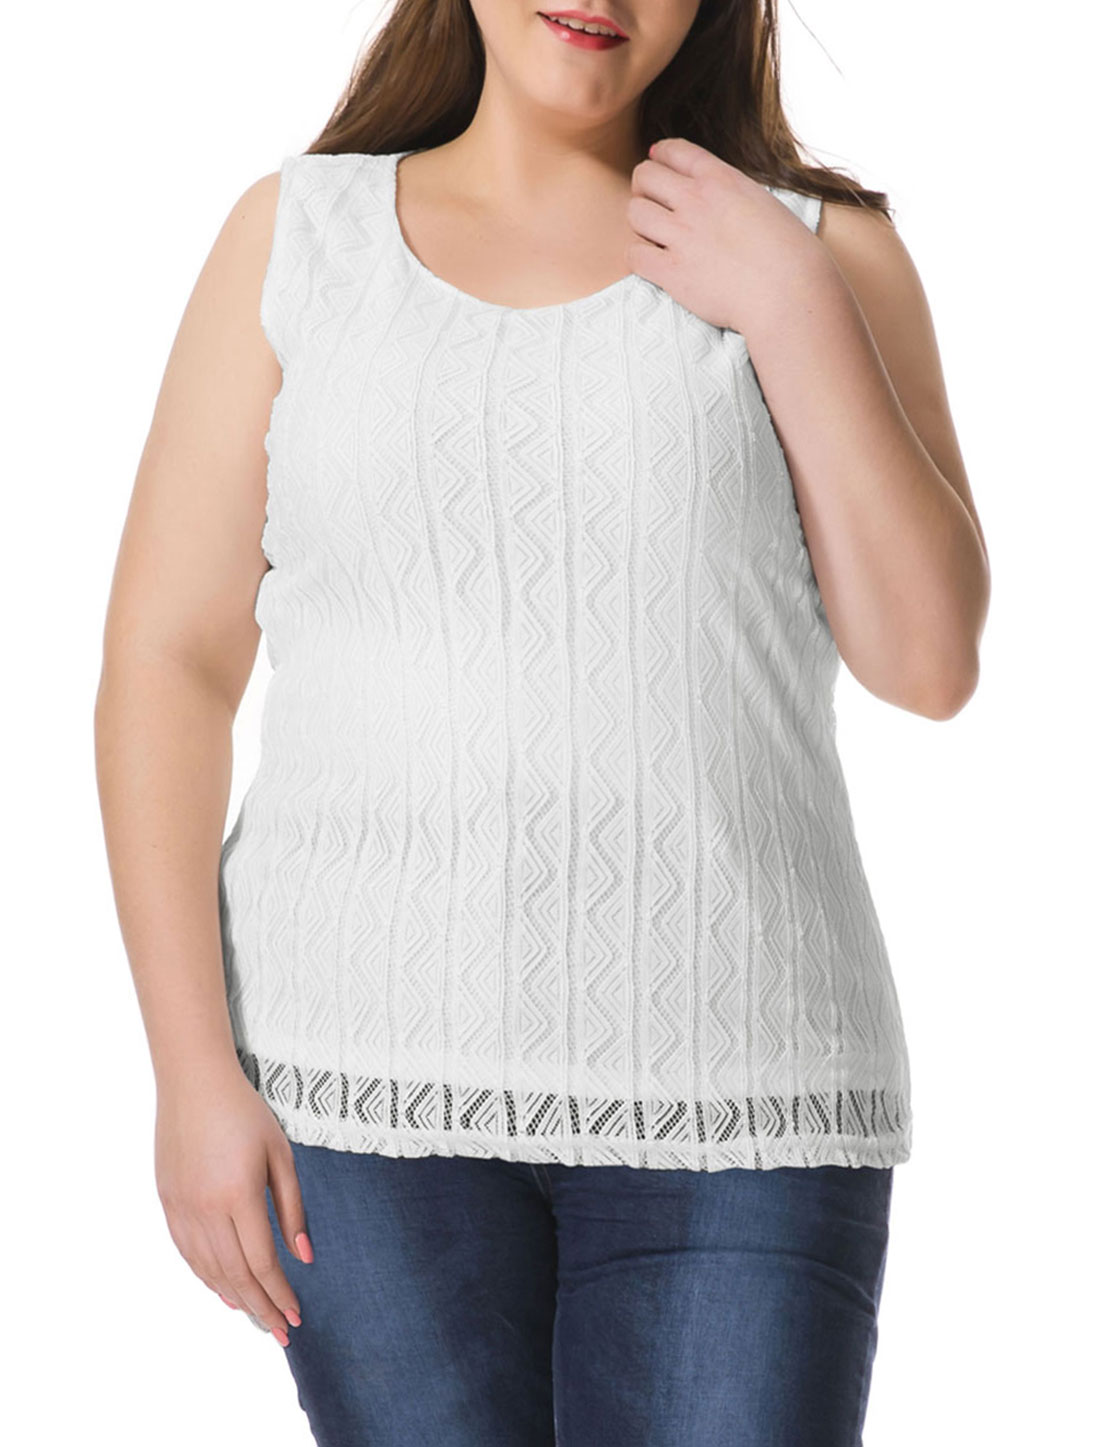 Women Plus Size Hollow Triangle Sleeveless Top White 1X